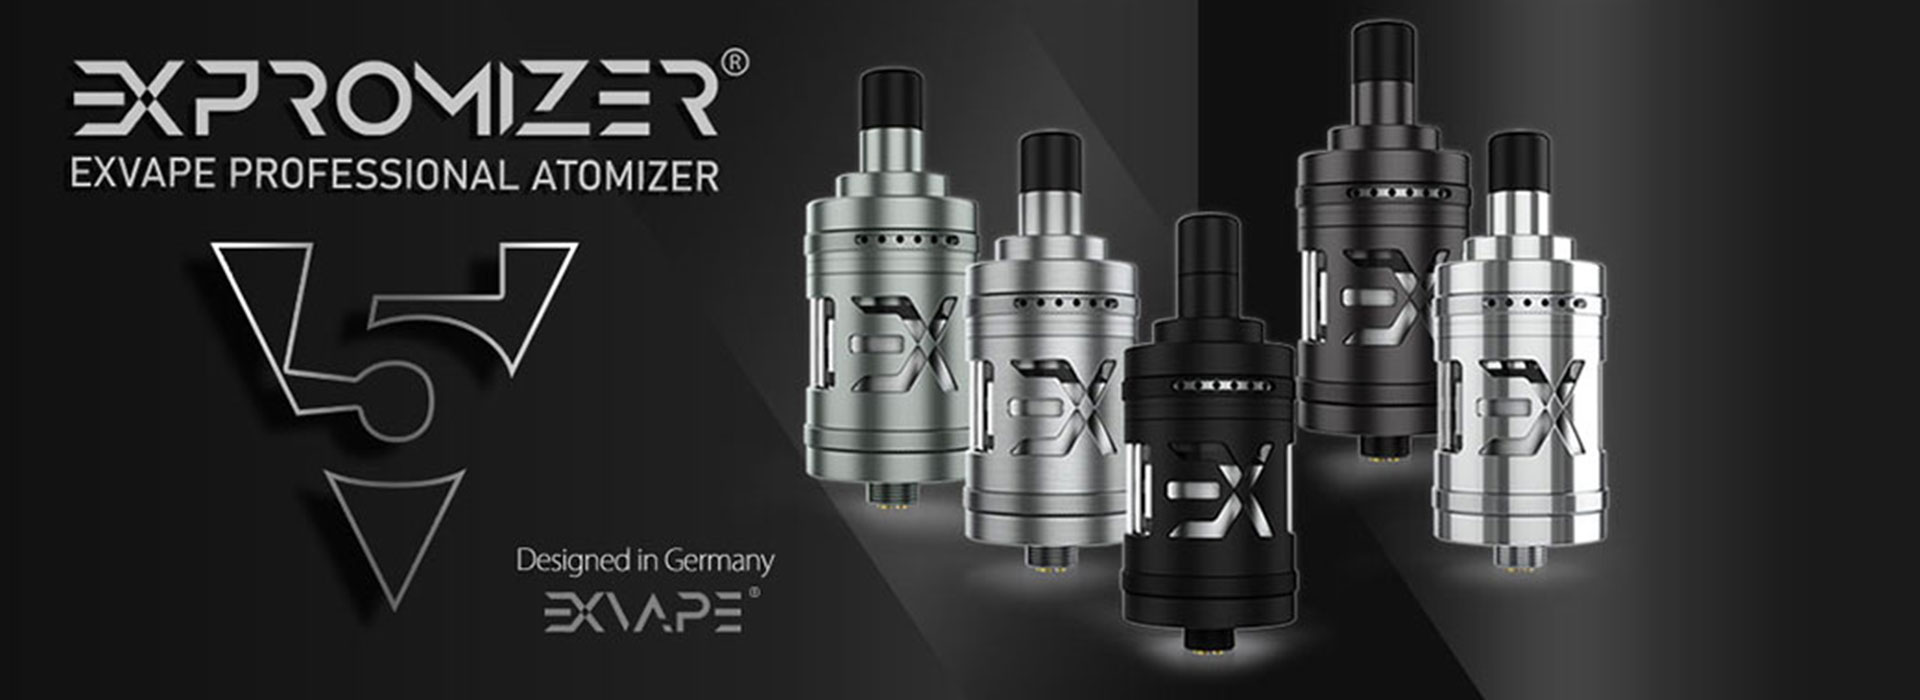 Expromizer v5